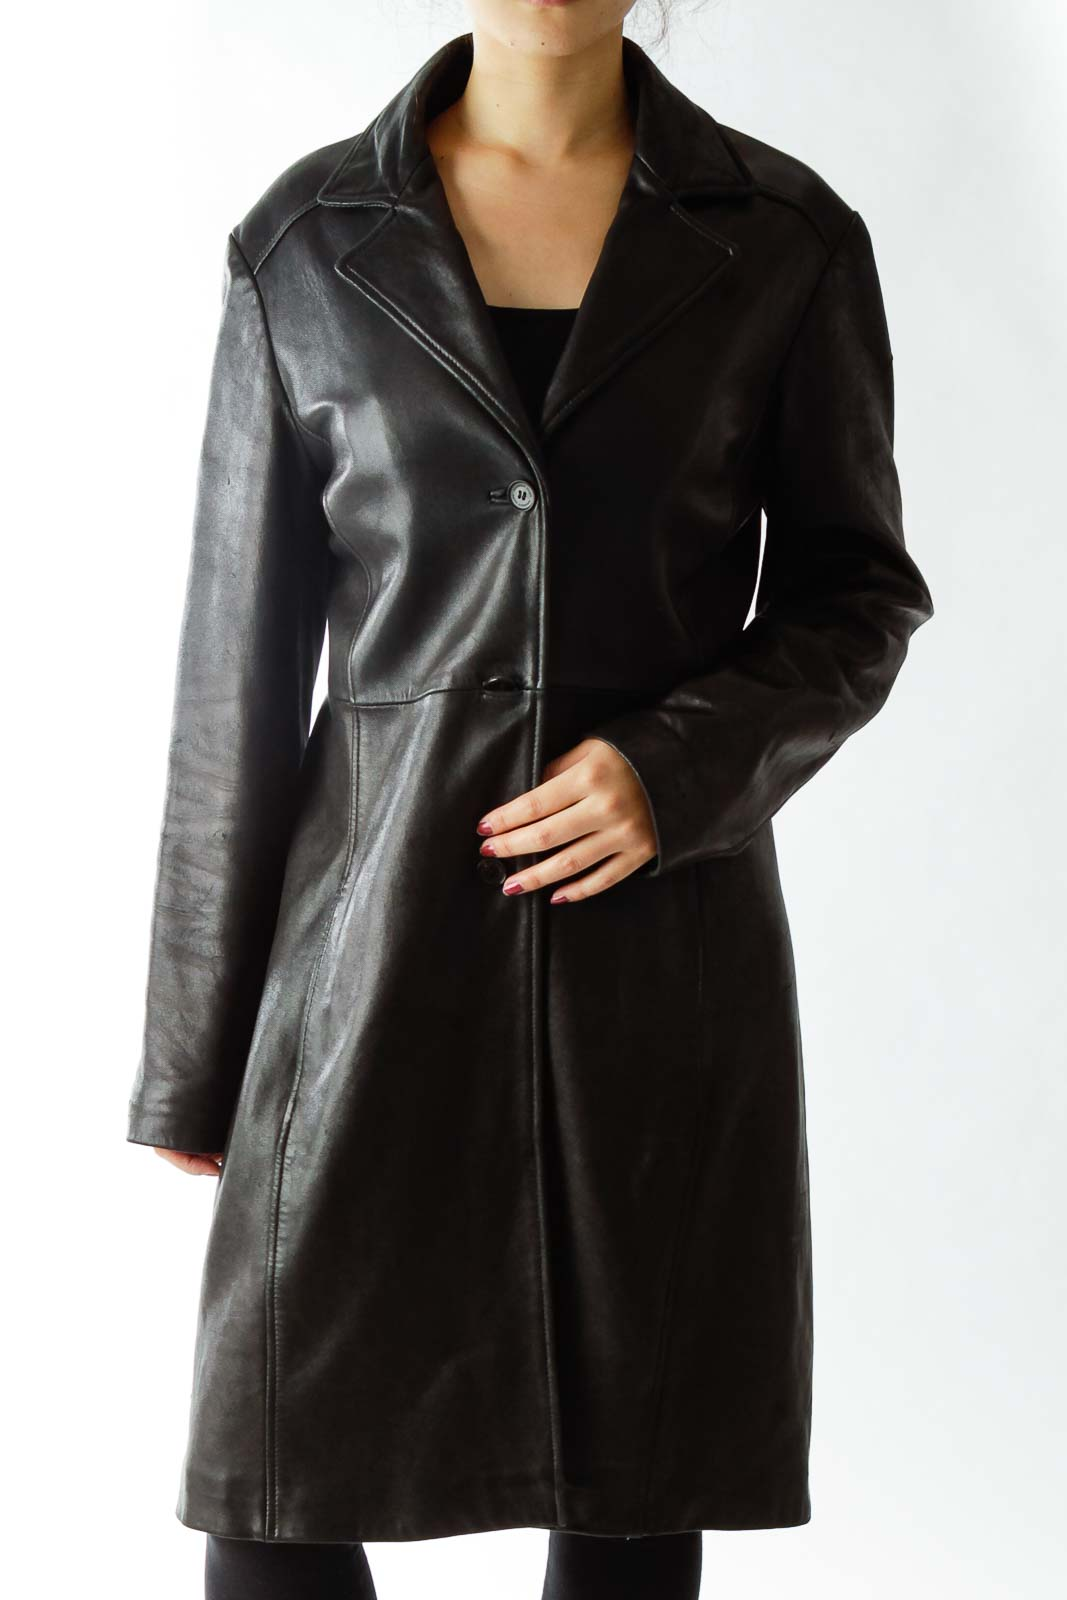 Black Singled Breasted Leather Coat